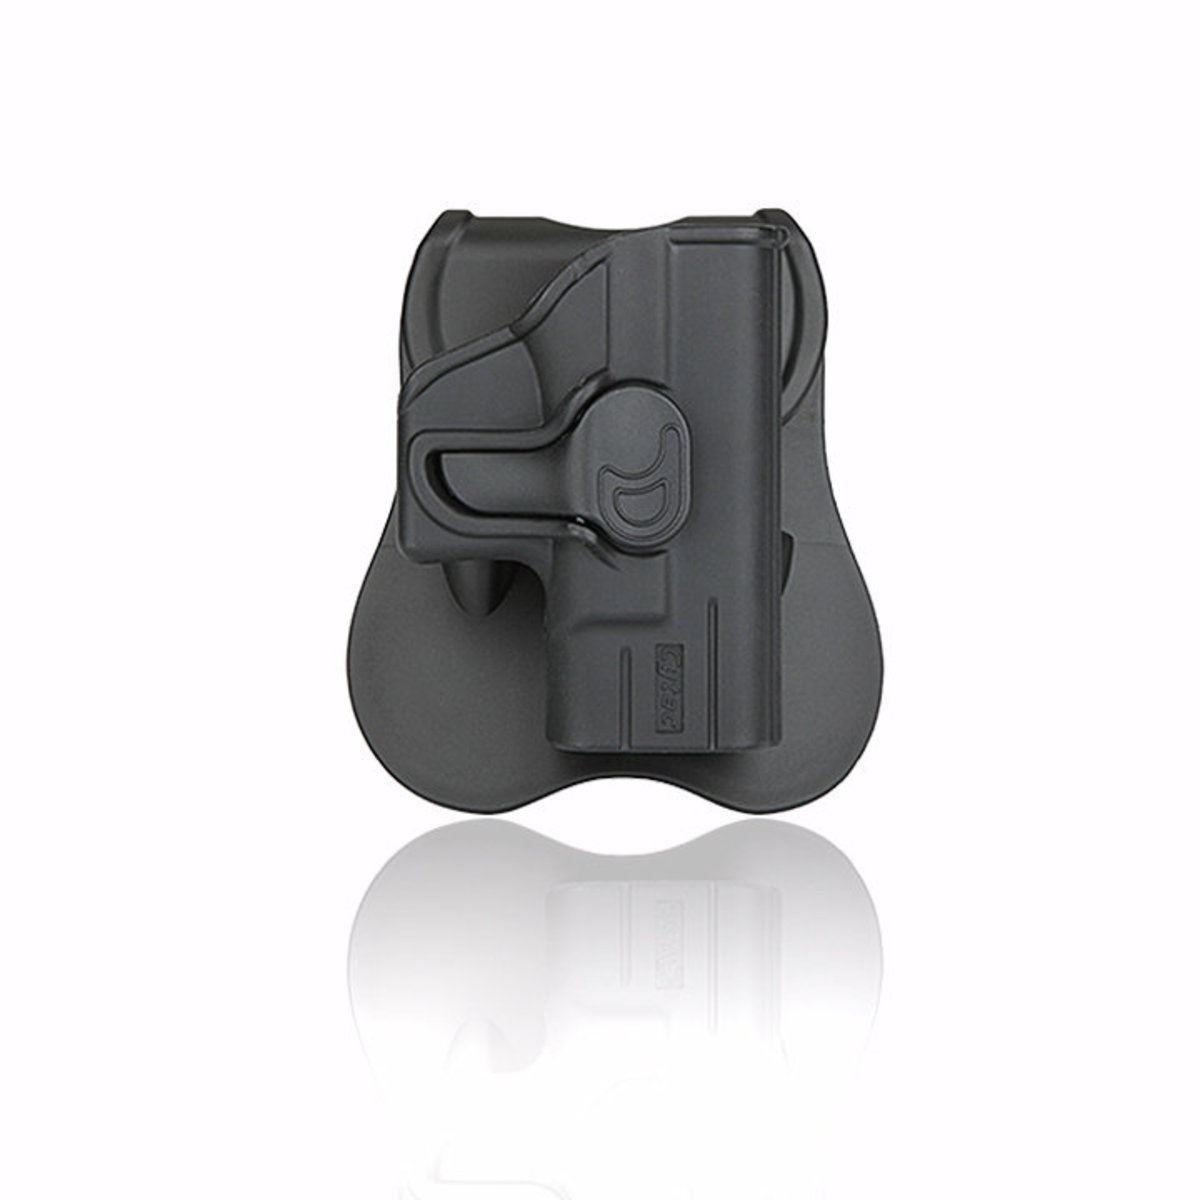 View larger image of Cytac OWB Holster - Fits GLOCK 42 (Gen 1, 2, 3, 4)